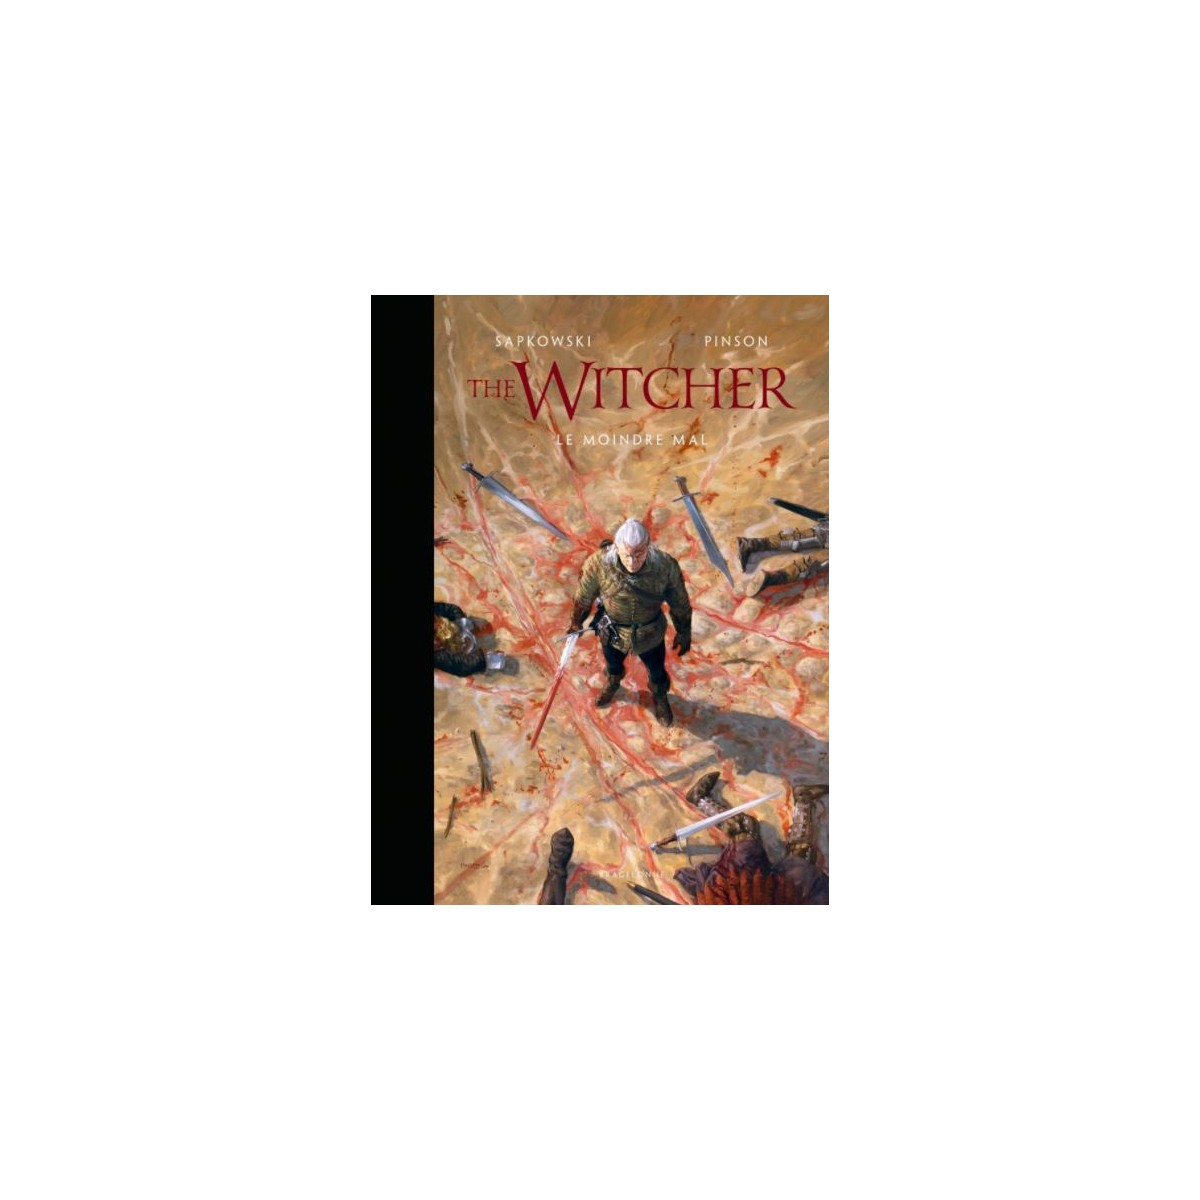 The Witcher illustré : Le moindre mal